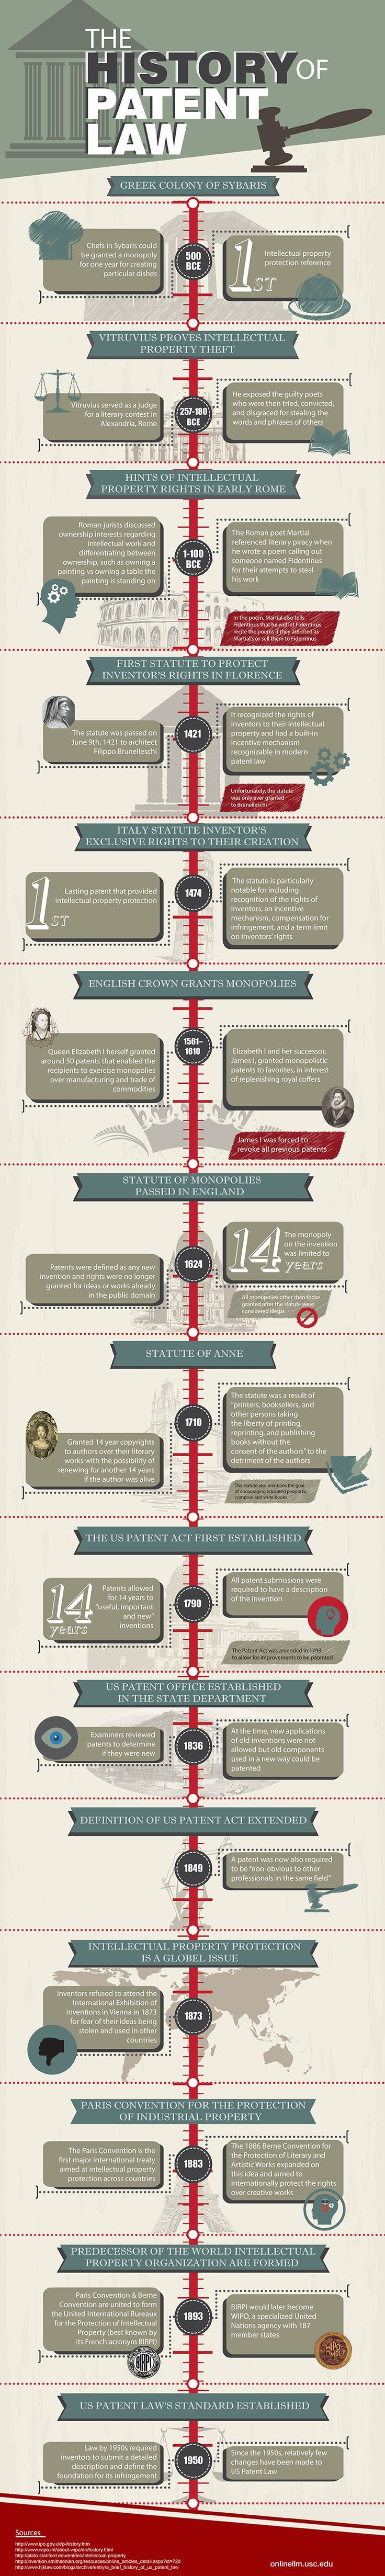 #Infographic on the global history of #patent law via University of Southern California Online LLM #IP: